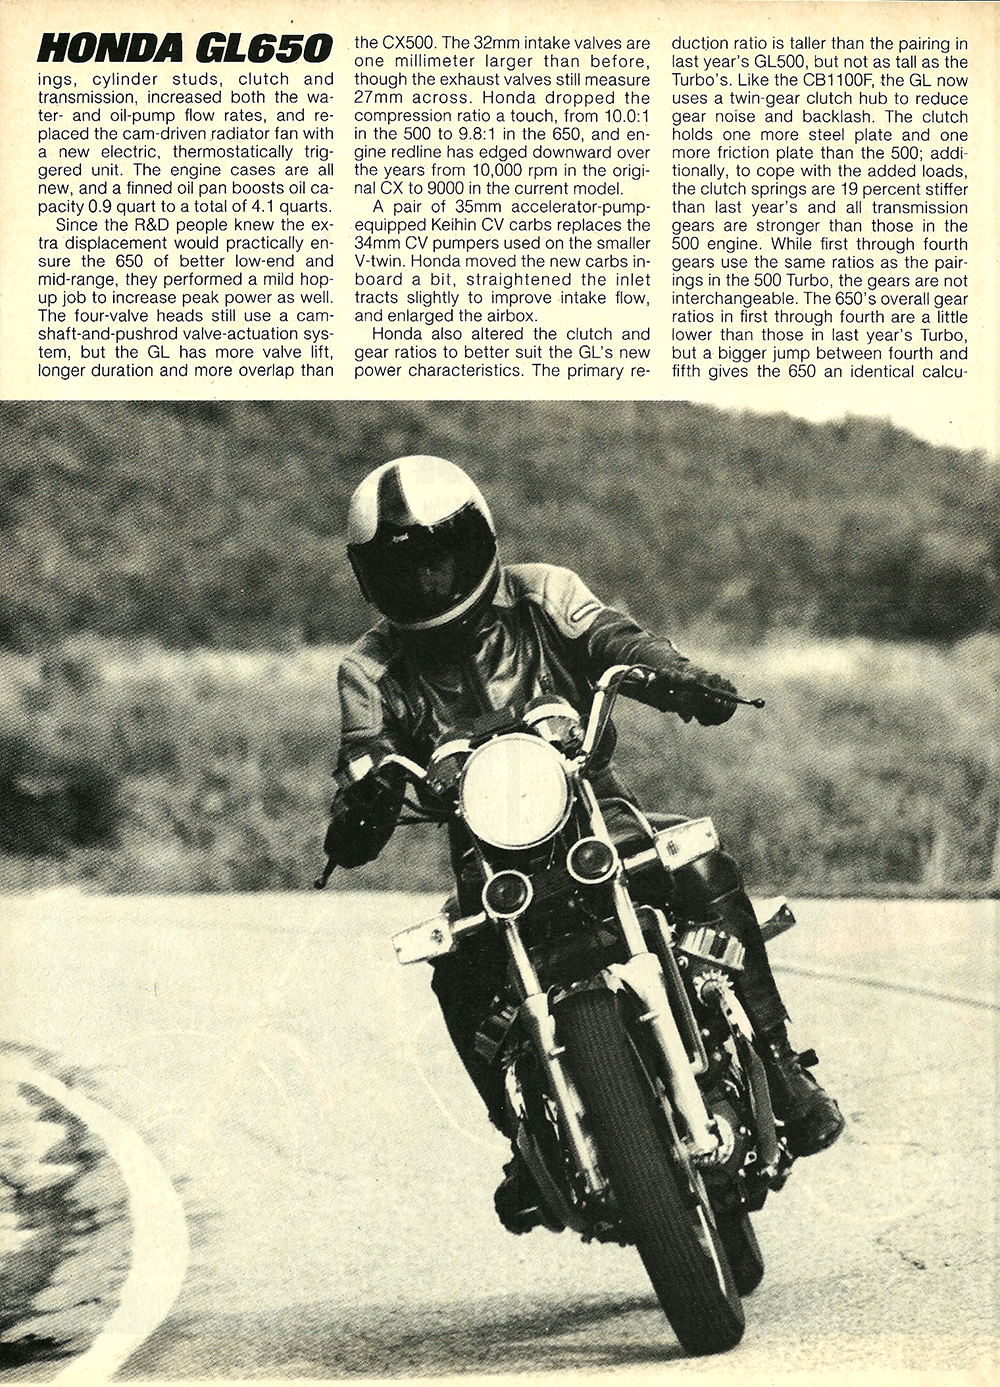 1983 Honda GL650 Silver Wing road test 2.jpg